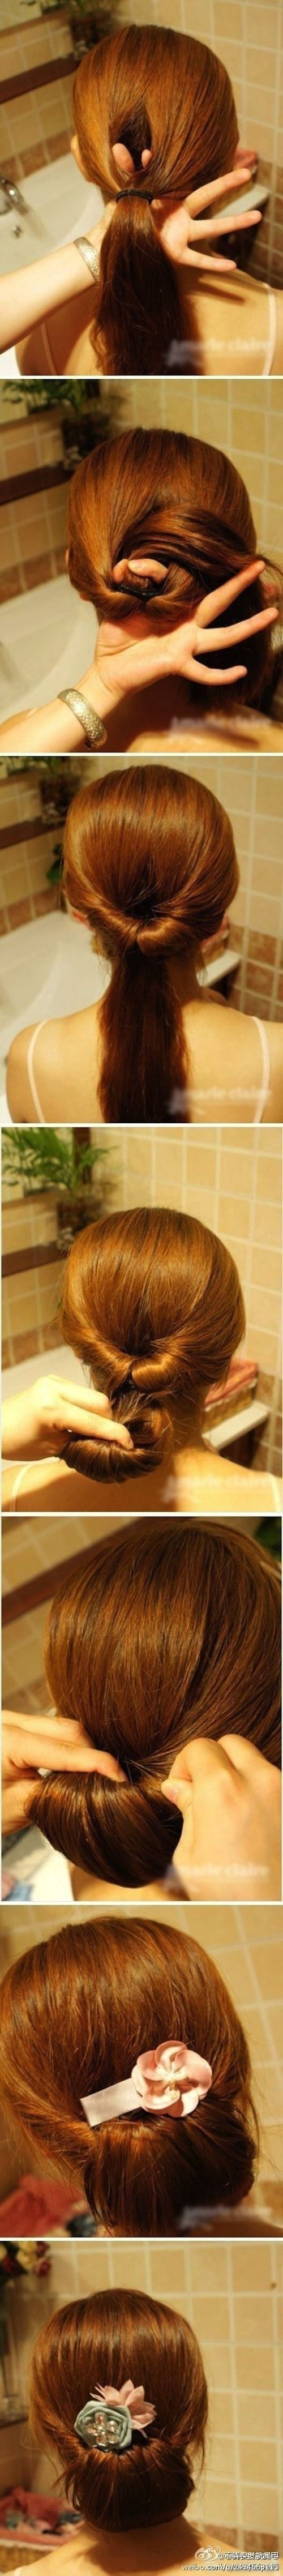 The middle section of the ponytail should be pinned away from your face. The other two remaining sections should be used to create the bow. Shape them into the sides of the bow and pin them down. The hair that you initially sectioned off separate from the ponytail can then be used to create the poof of a braid that hides the ponytail.